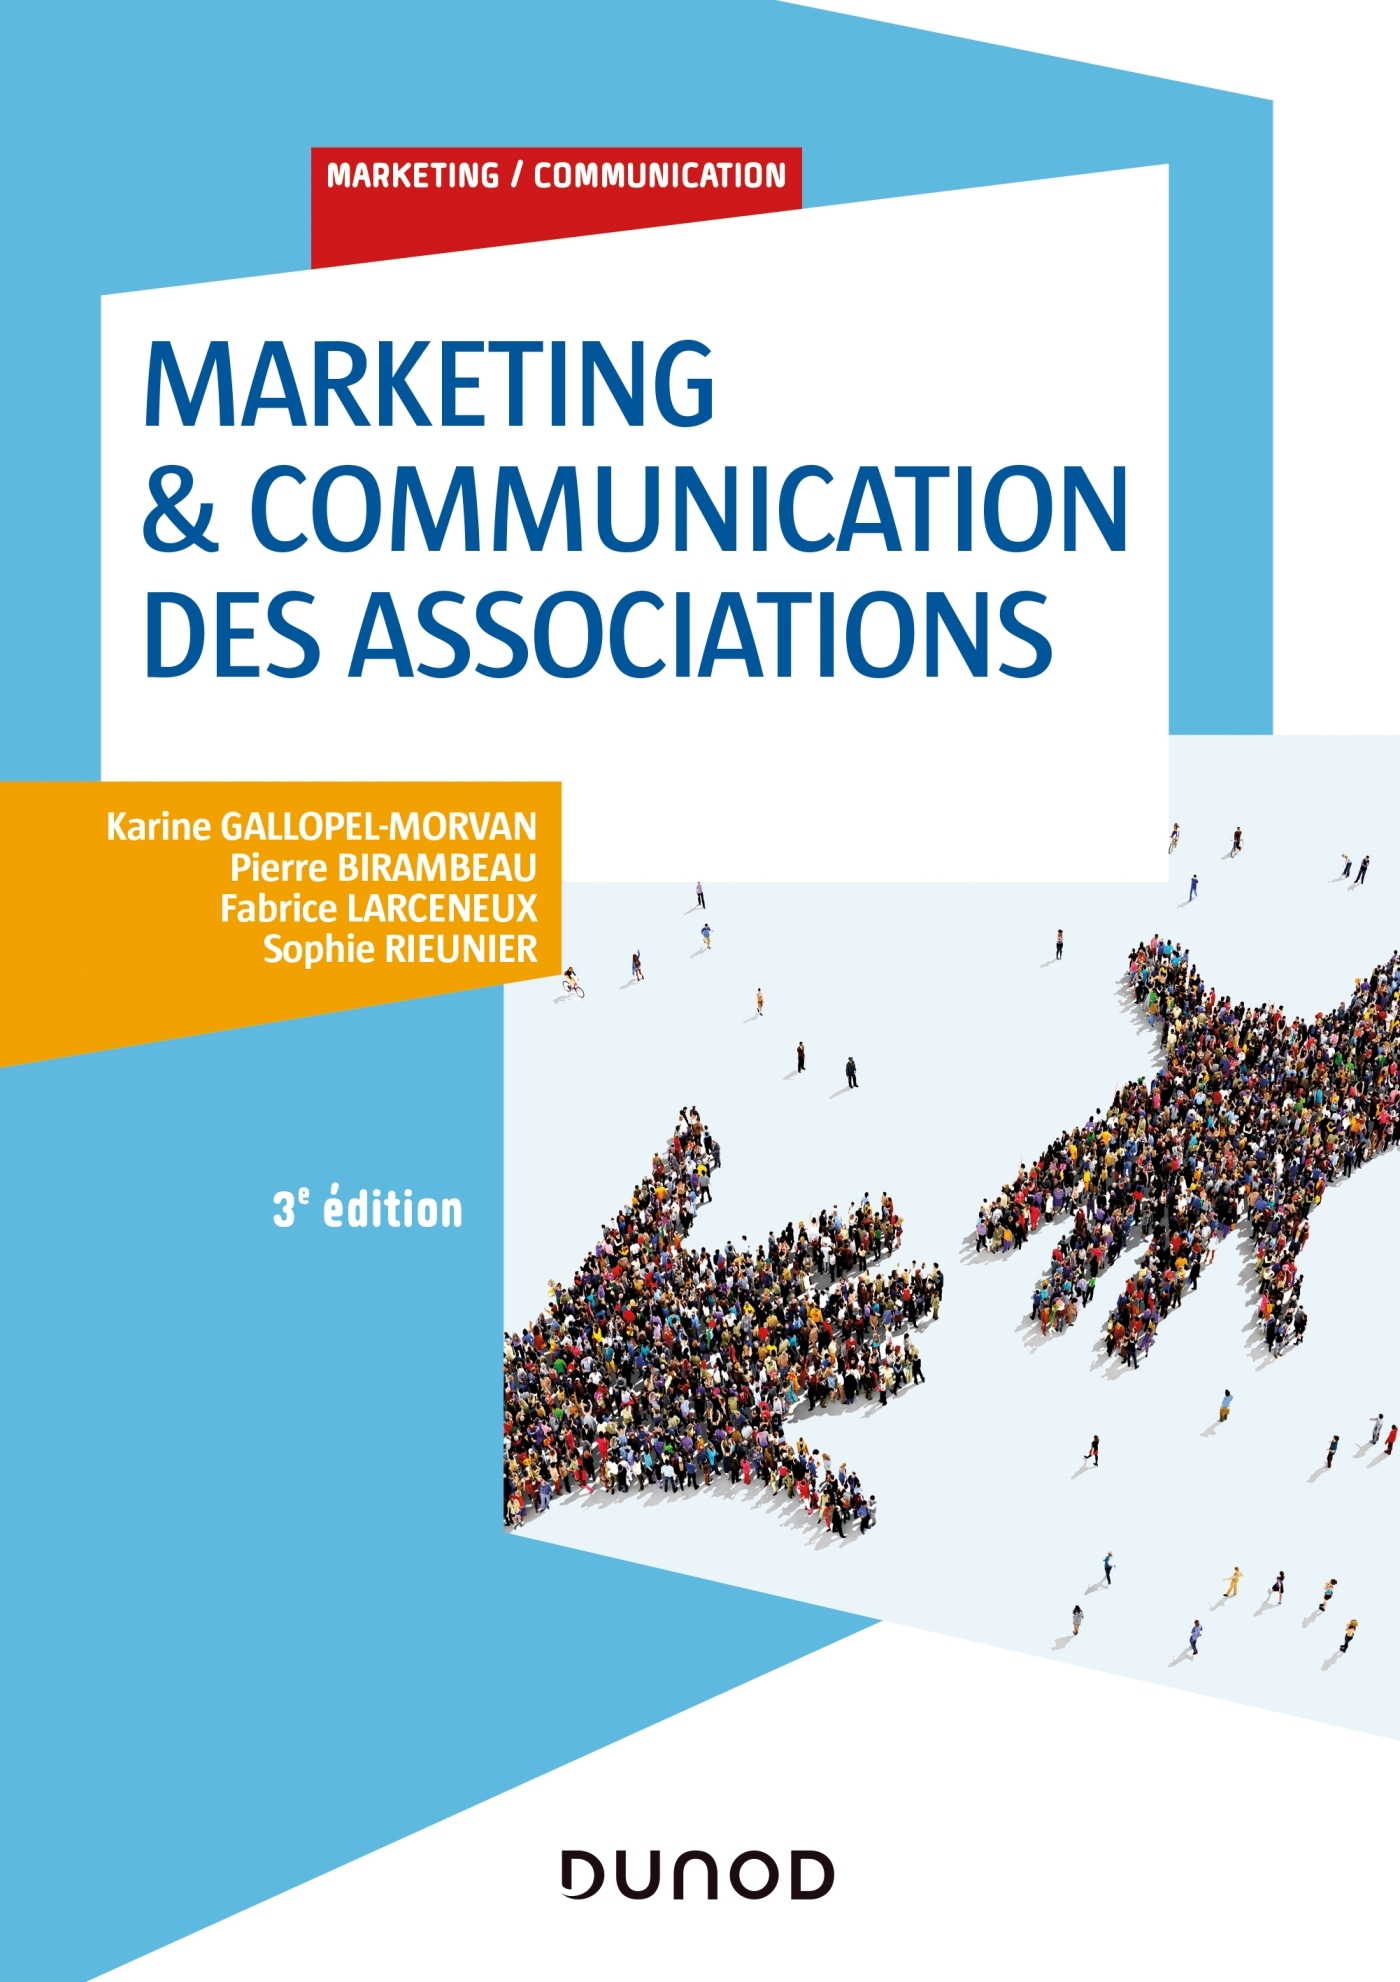 MARKETING & COMMUNICATION DES ASSOCIATIONS - 3E ED.